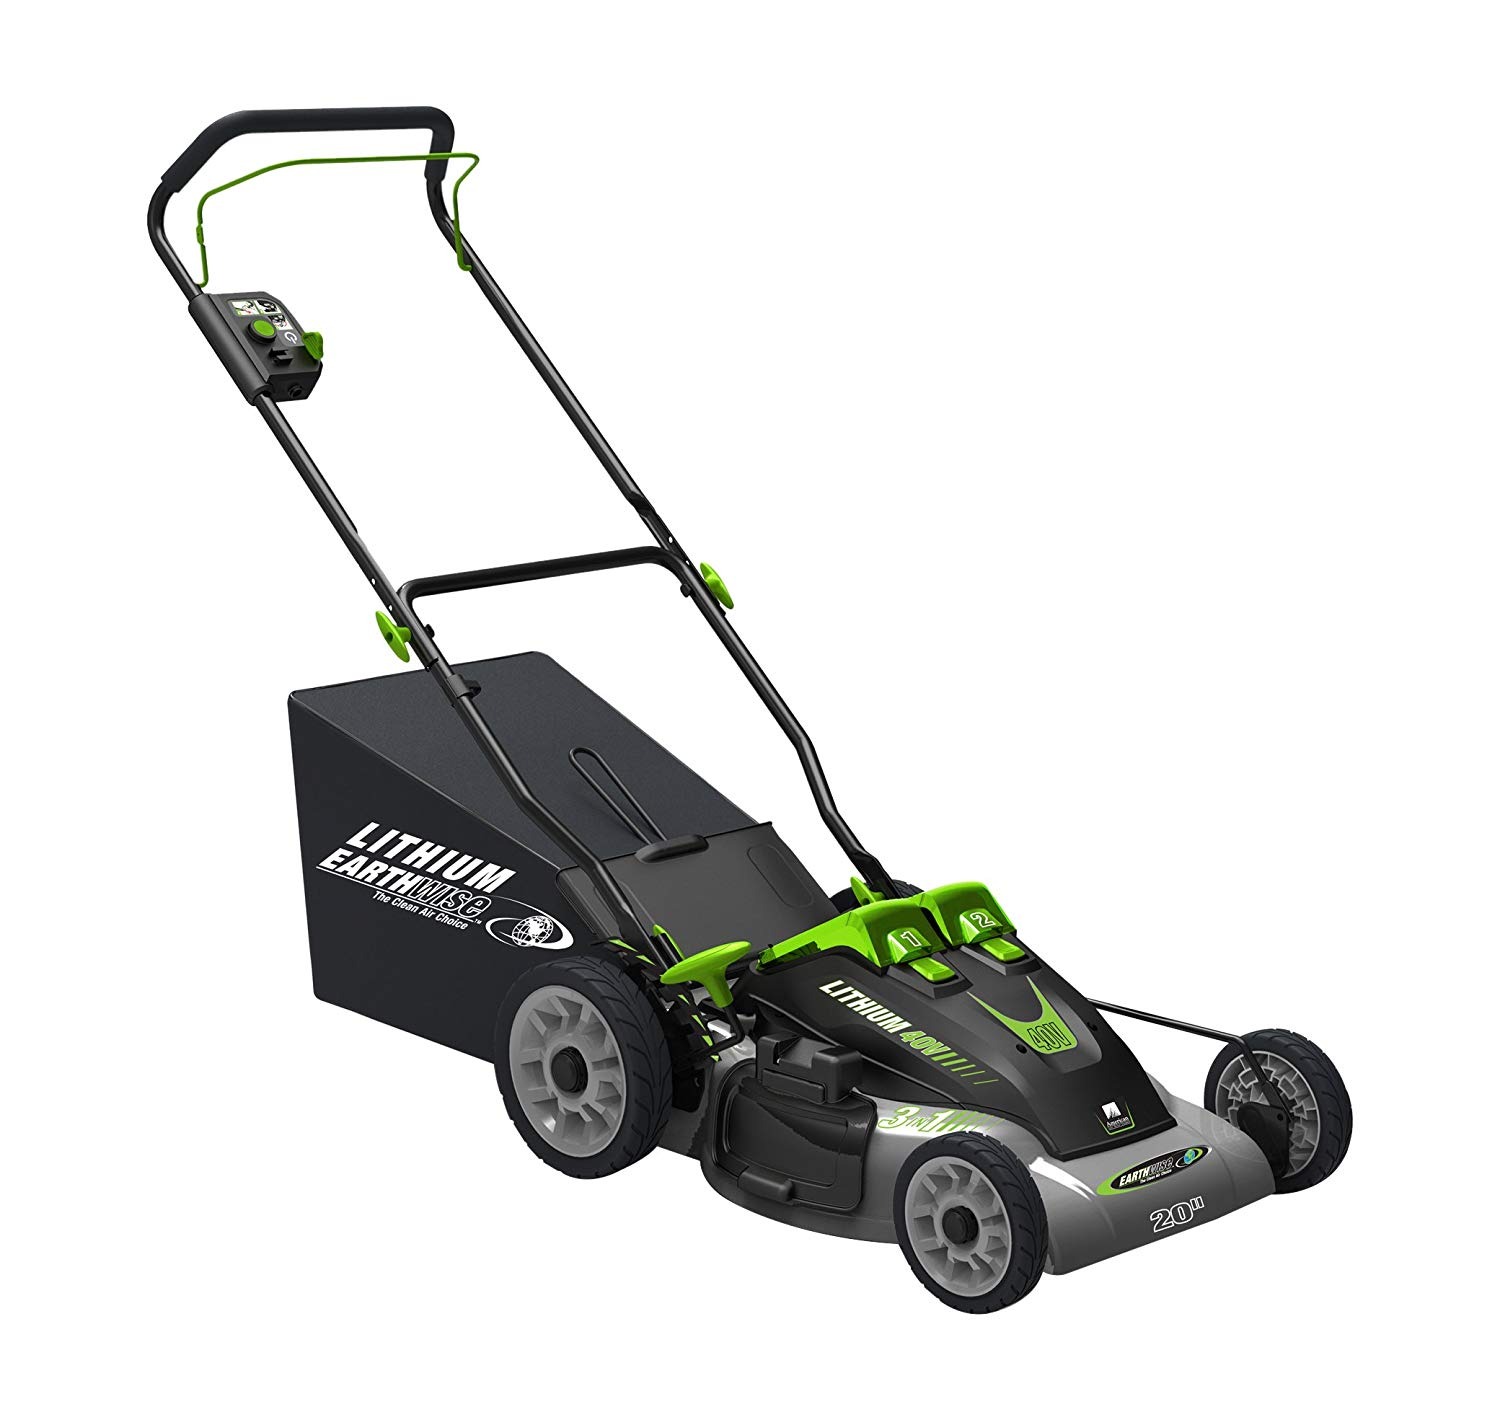 Best Cordless Lawn Mower 2020.5 Best Battery Powered Cordless Lawn Mowers 2020 Going To